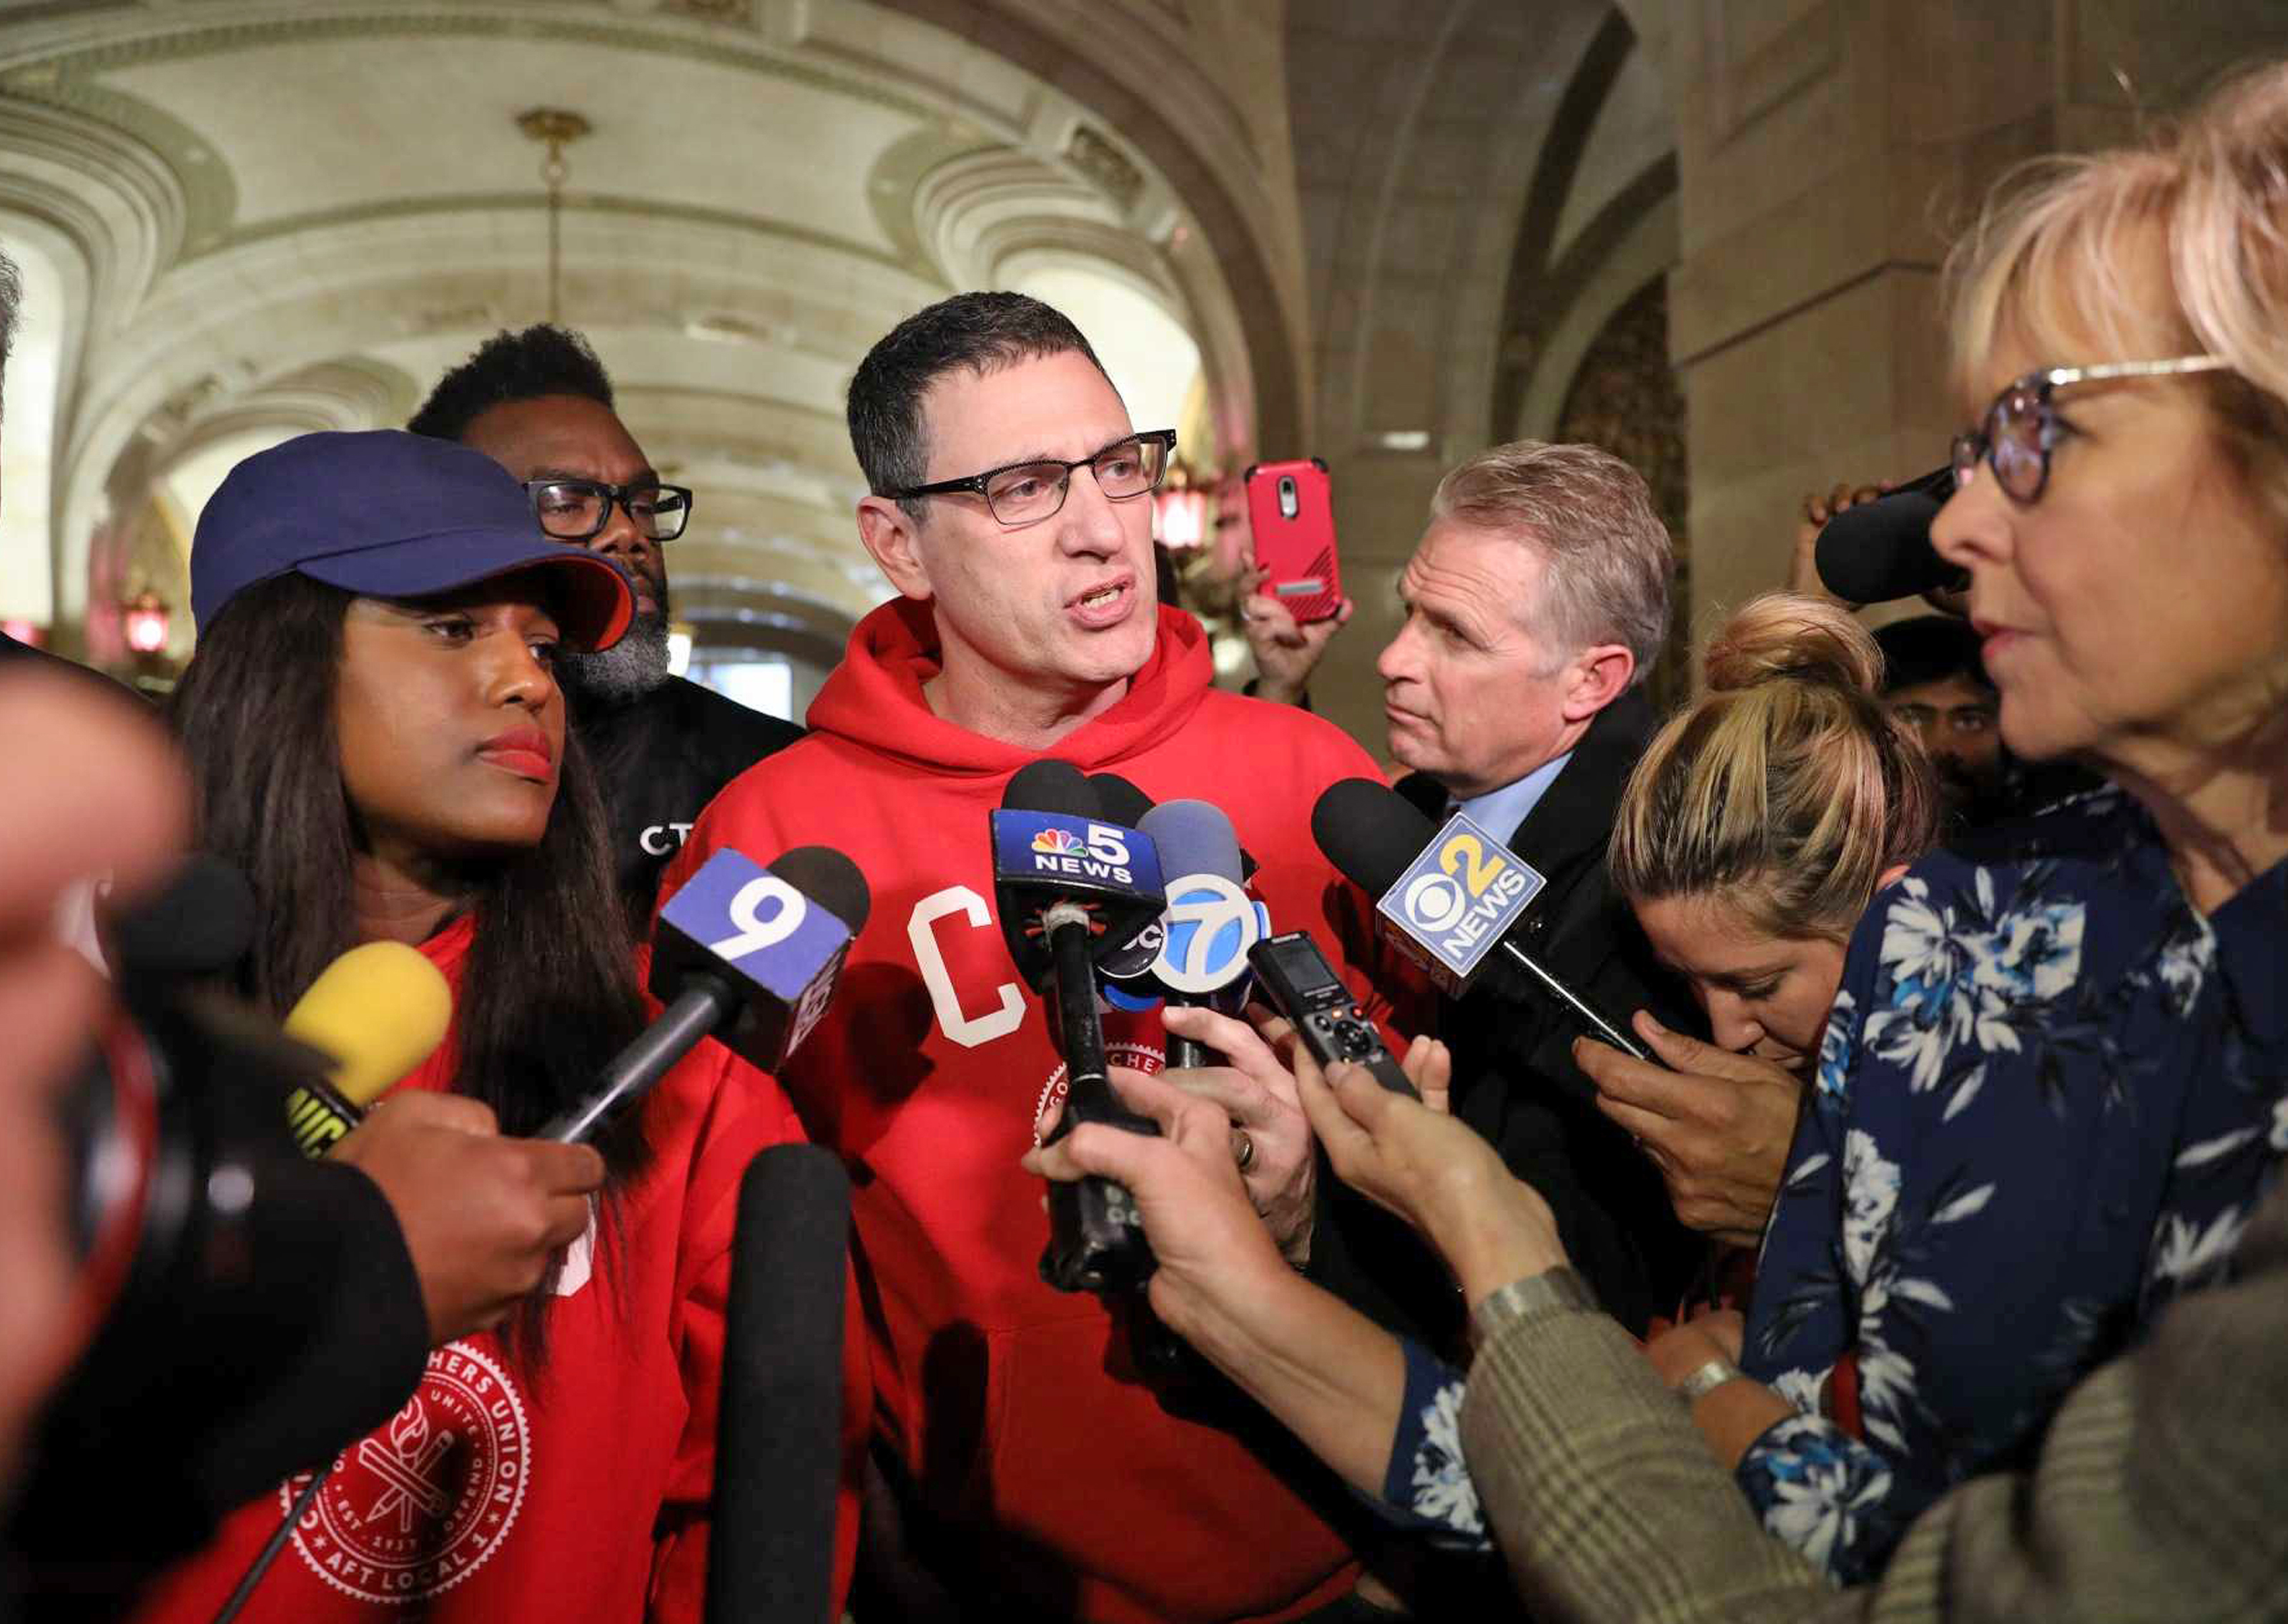 Chicago Teachers Union president Jesse Sharkey (red sweatshirt) and vice president Stacy Davis Gates (blue cap) at a news conference after the 2019 teachers strike ended.